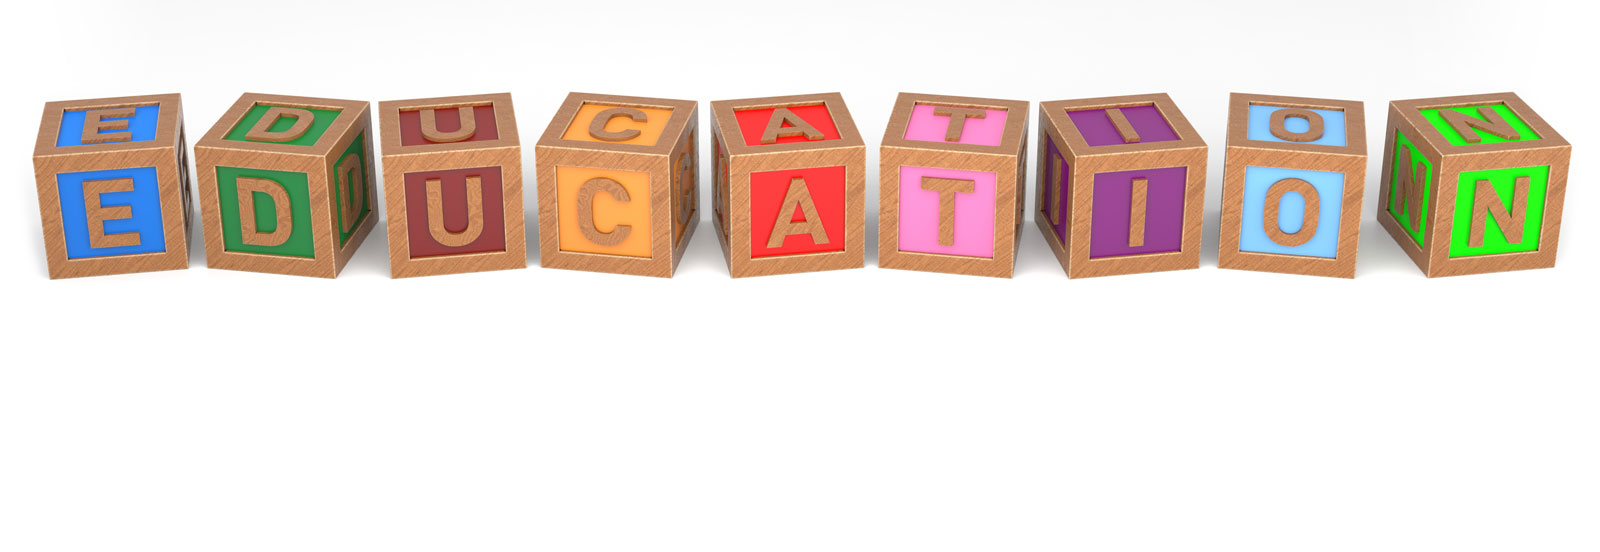 Wooden Blocks Spelling Education